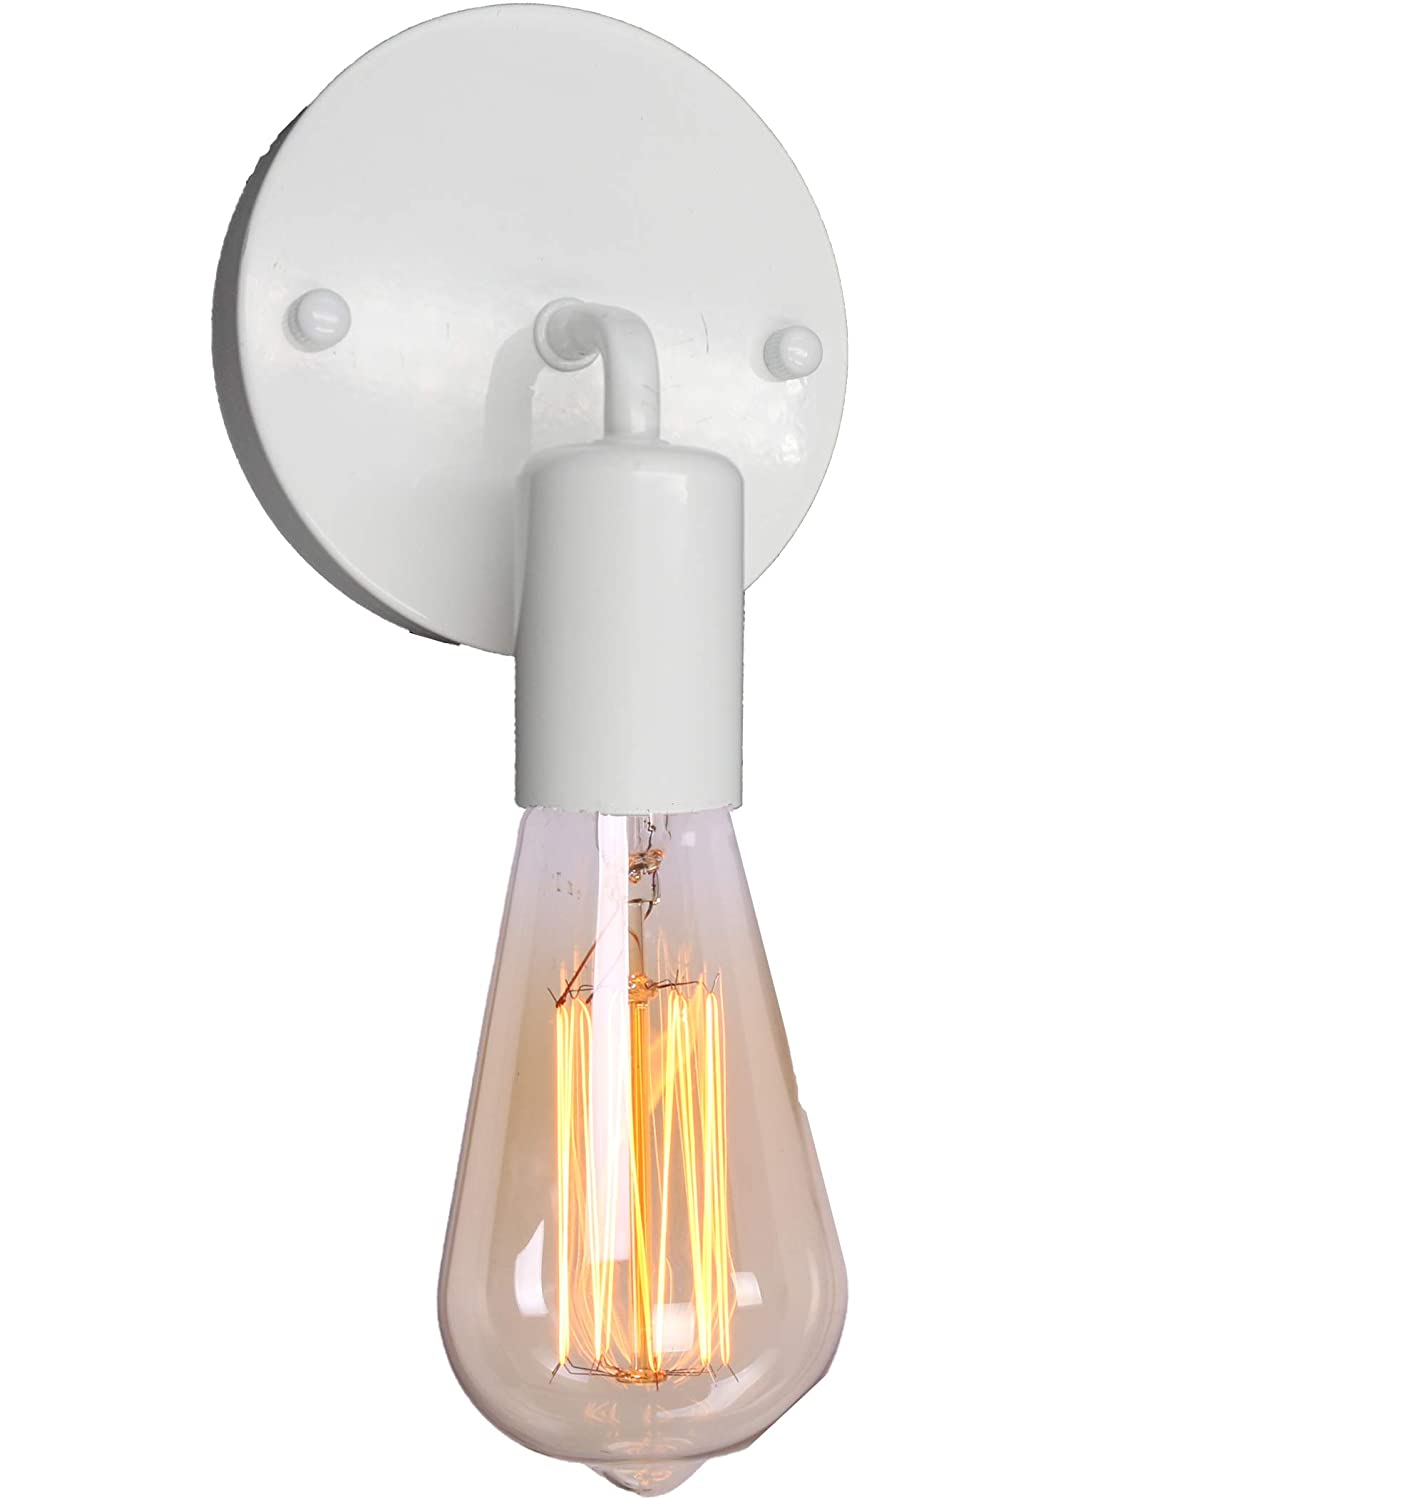 Brightess retro white wall sconce w8963 lighting gooseneck simple lights industrial vintage farmhouse wall lamp for indoor hardwired amazon com